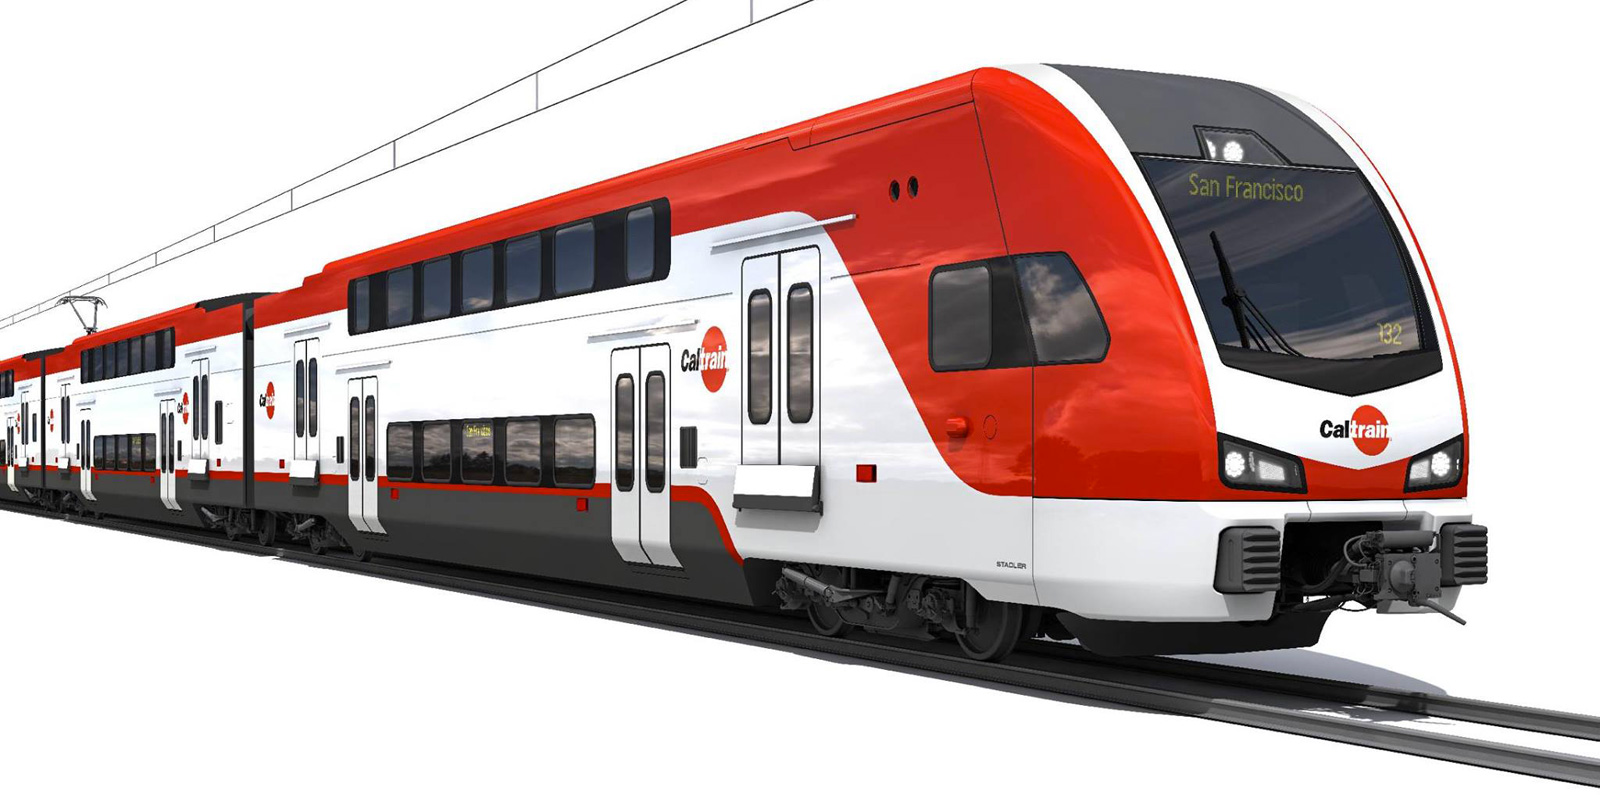 [US] Caltrain electrification works started – train design ...